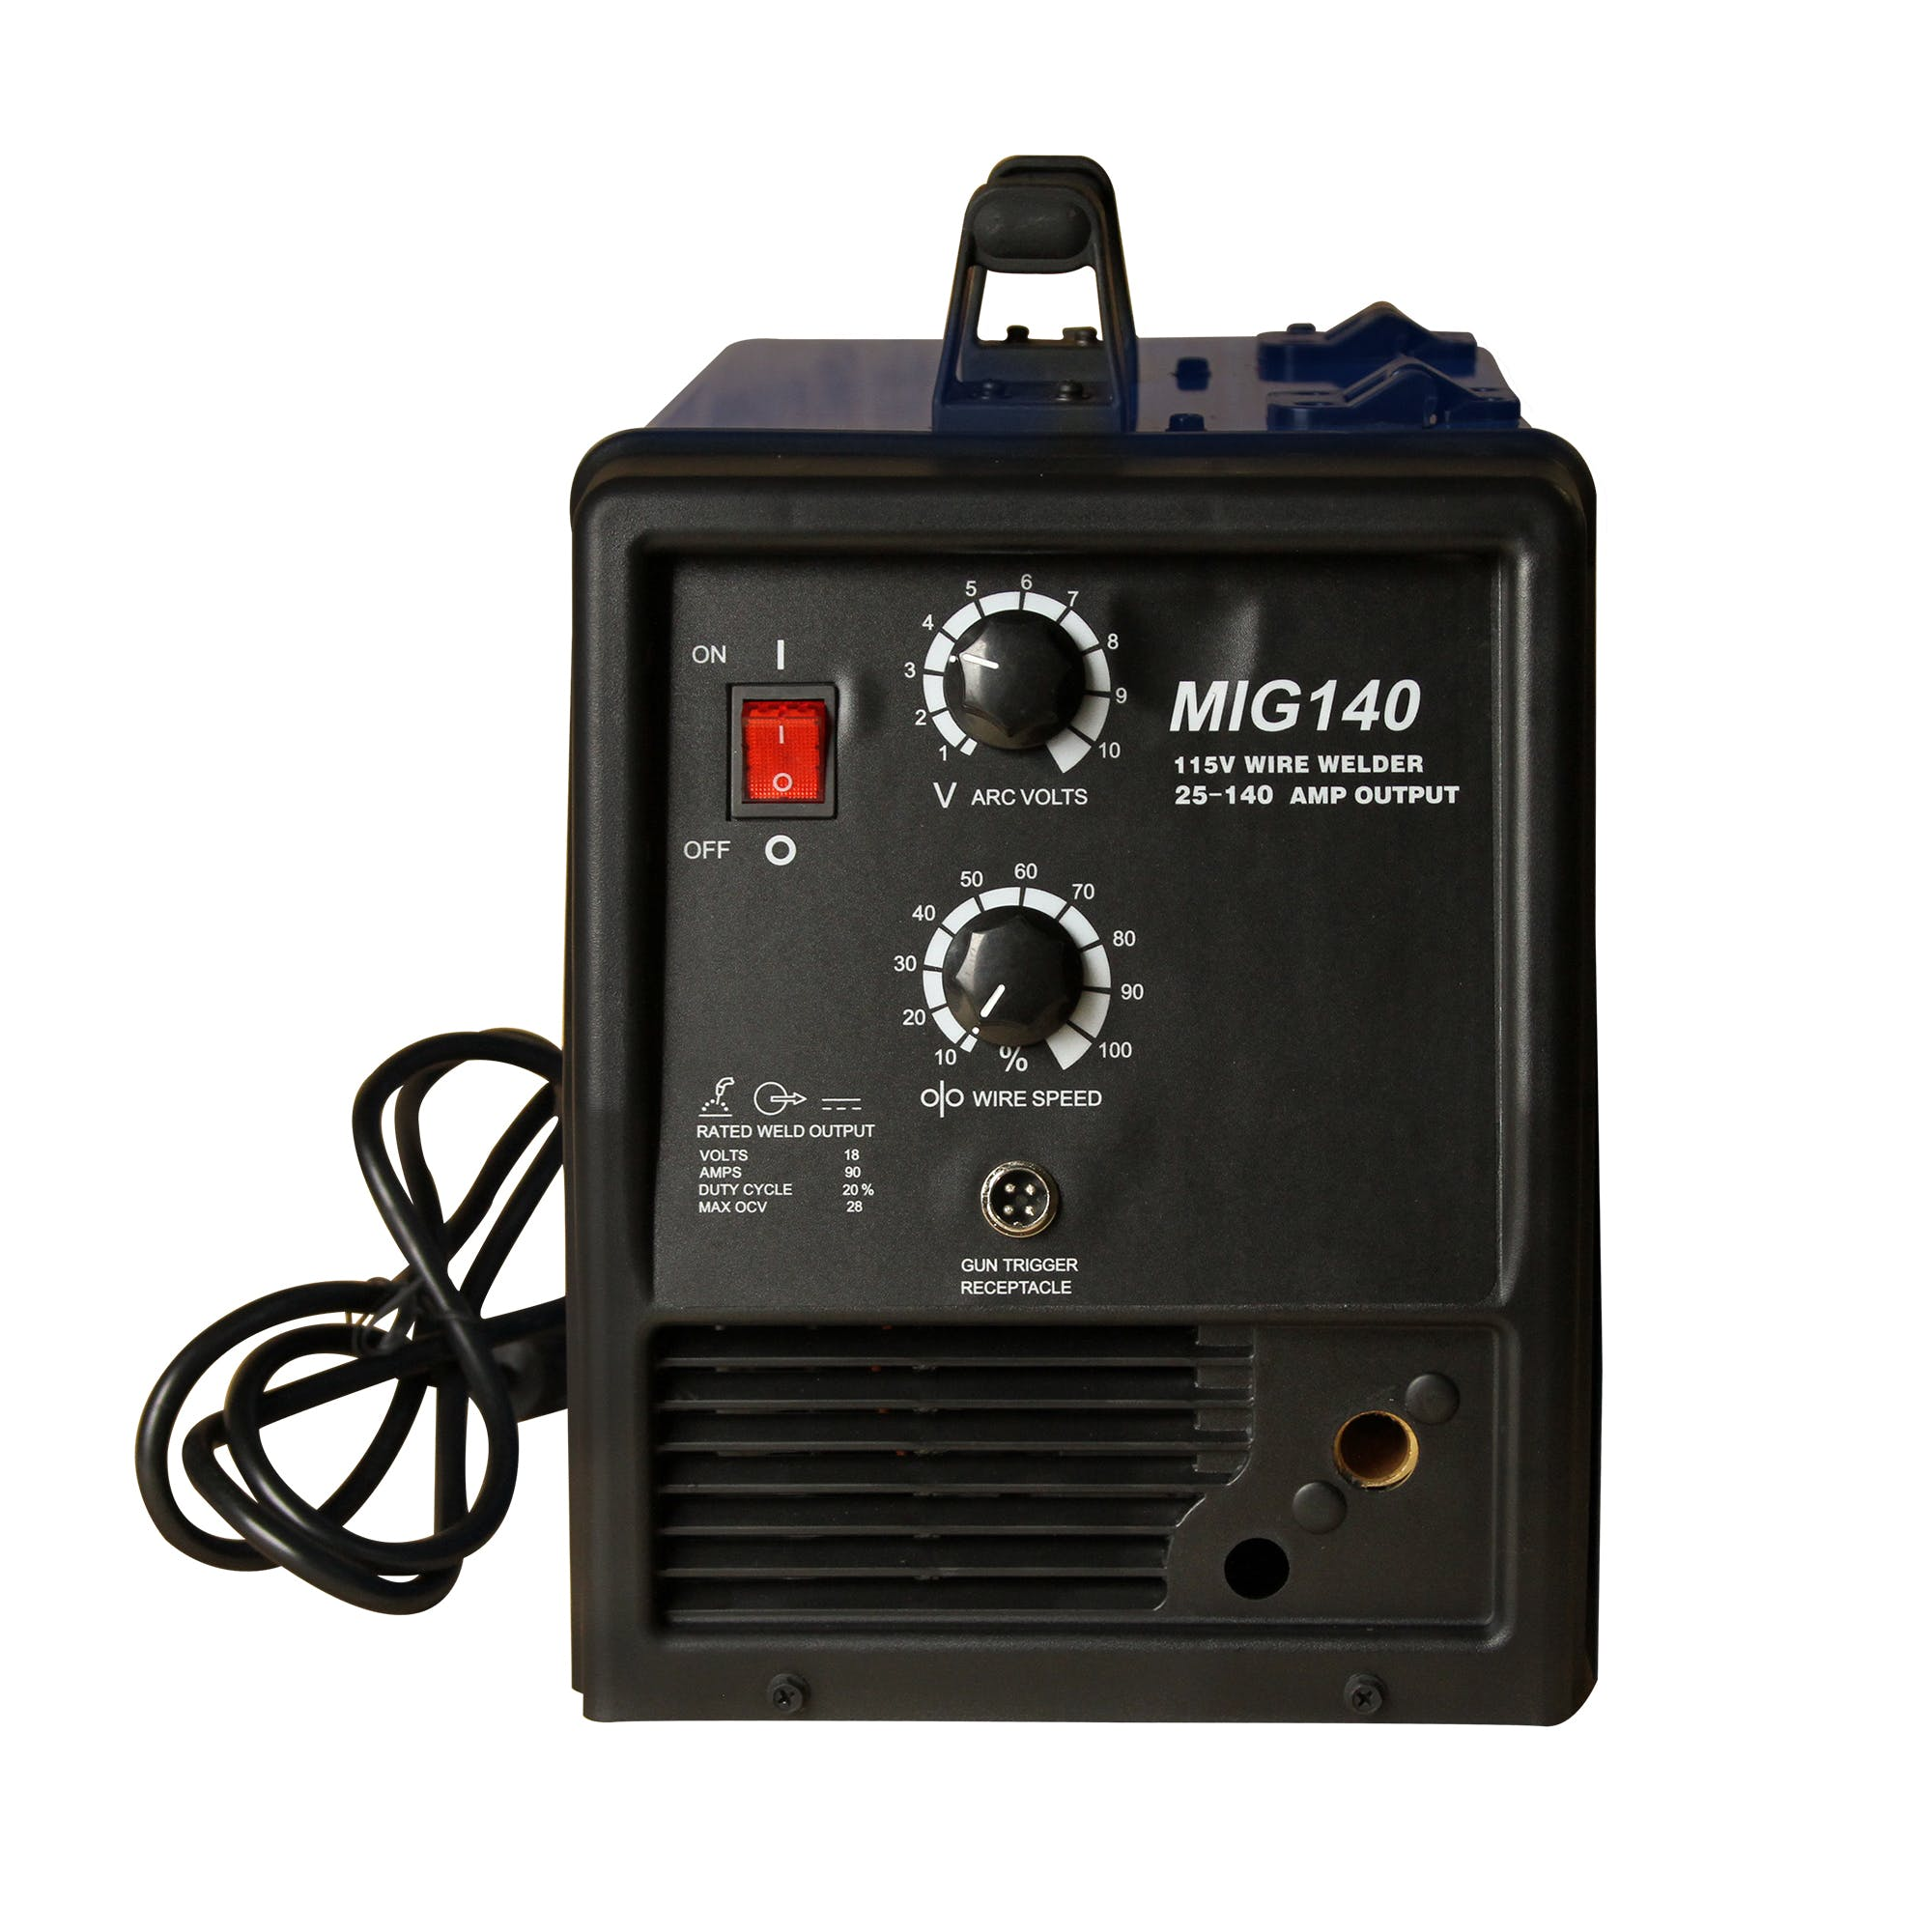 LOTOS MIG140 140A MIG Welder with SPOOL GUN - sold by LOTOS Technology